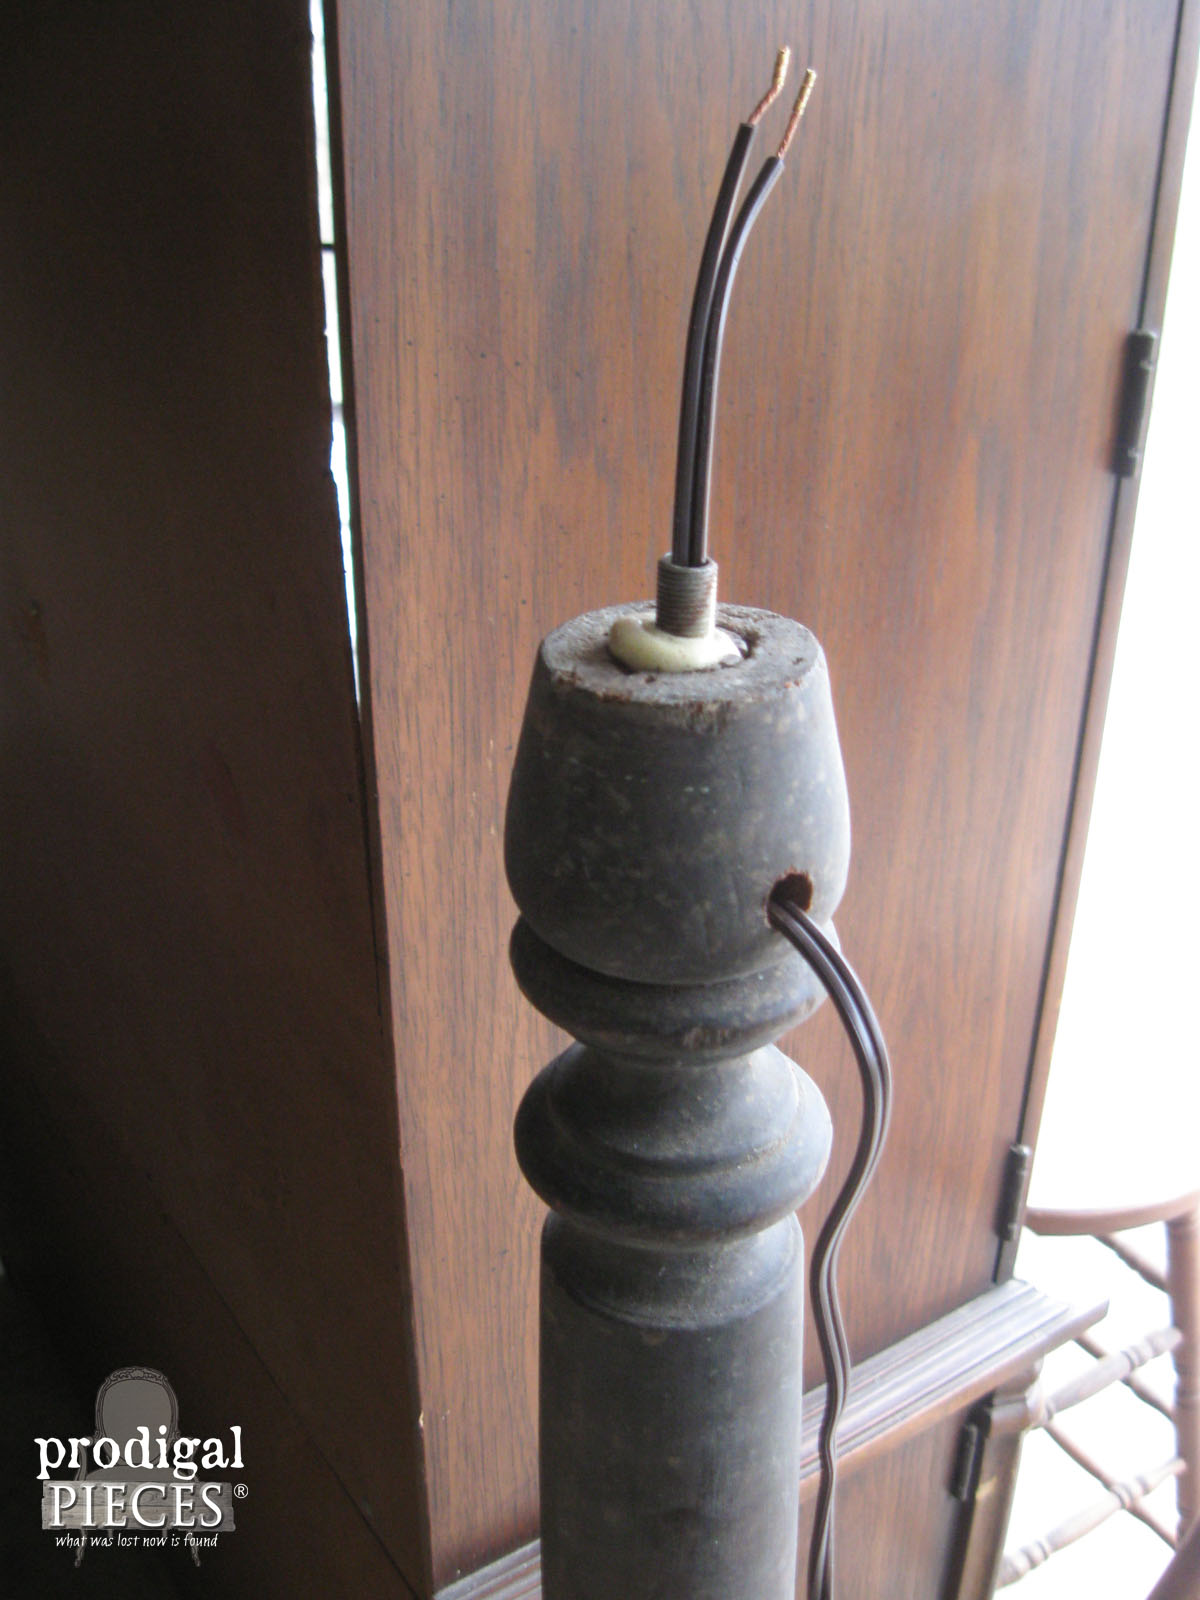 Adding Wiring to Repurposed Antique Rocker Leg Lamp | Prodigal Pieces | www.prodigalpieces.com